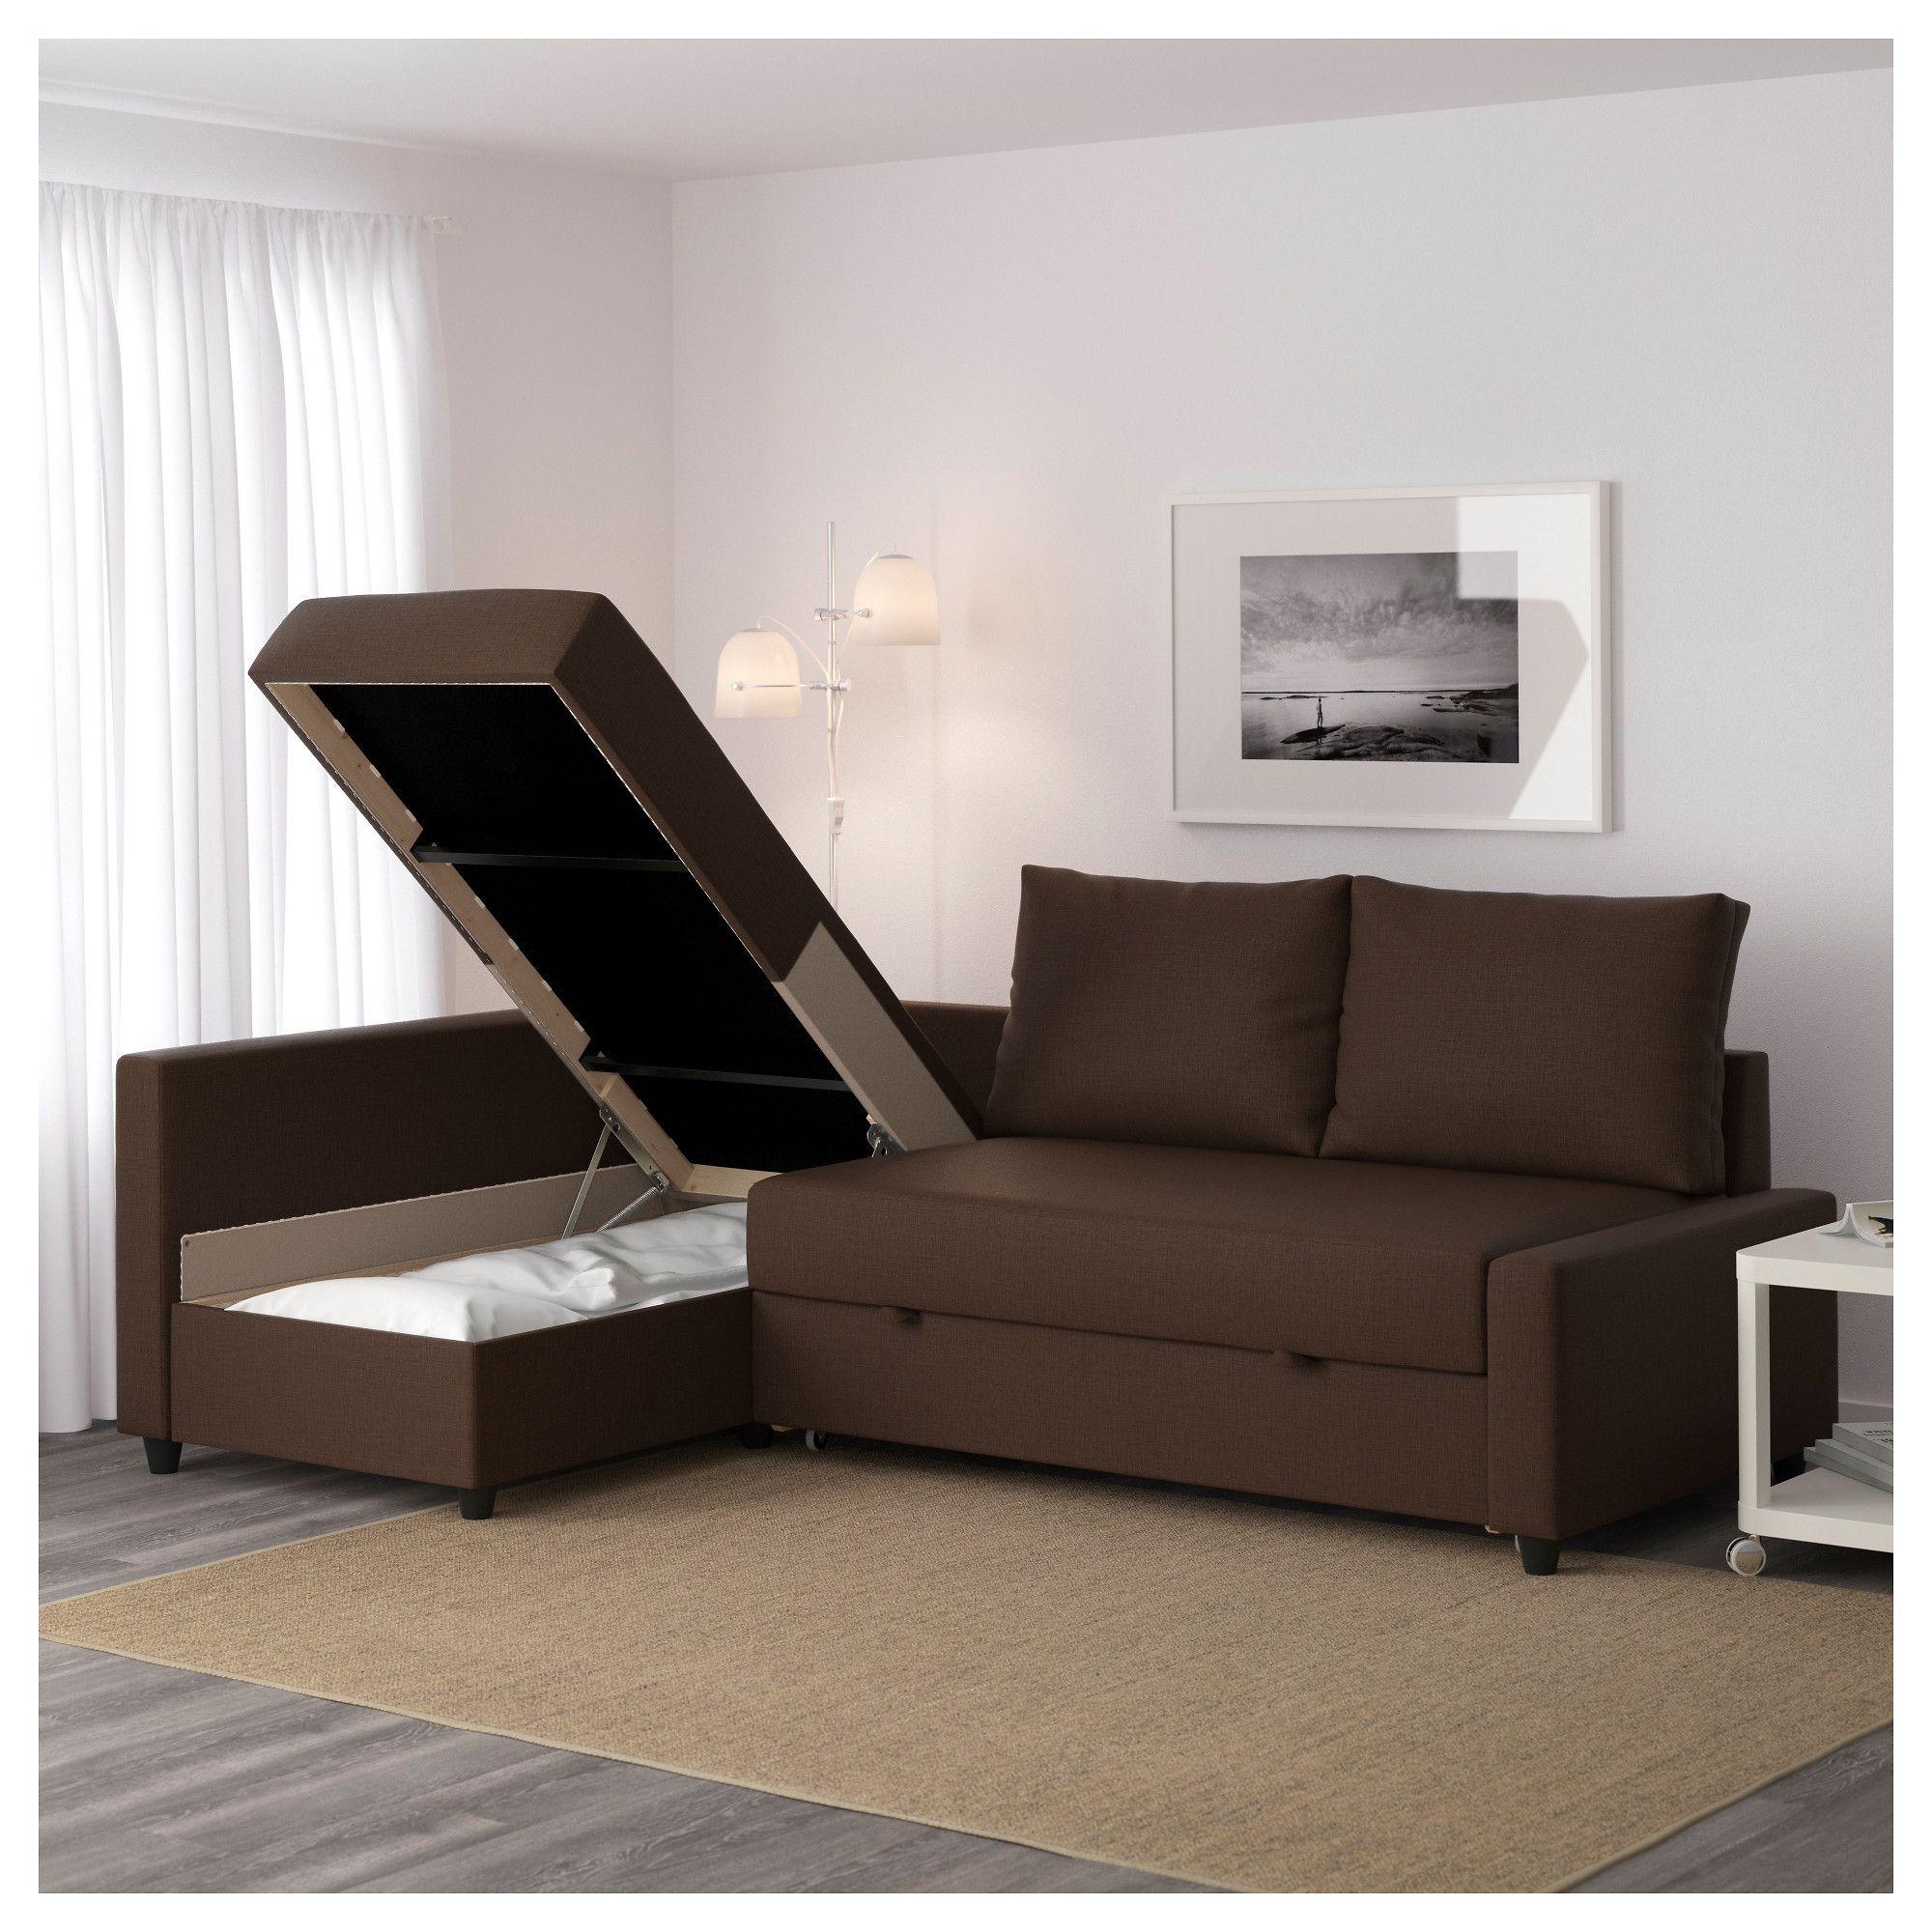 Aspen Convertible Sectional Storage Sofa Bed Adelaide White Leather Modern With Fabio